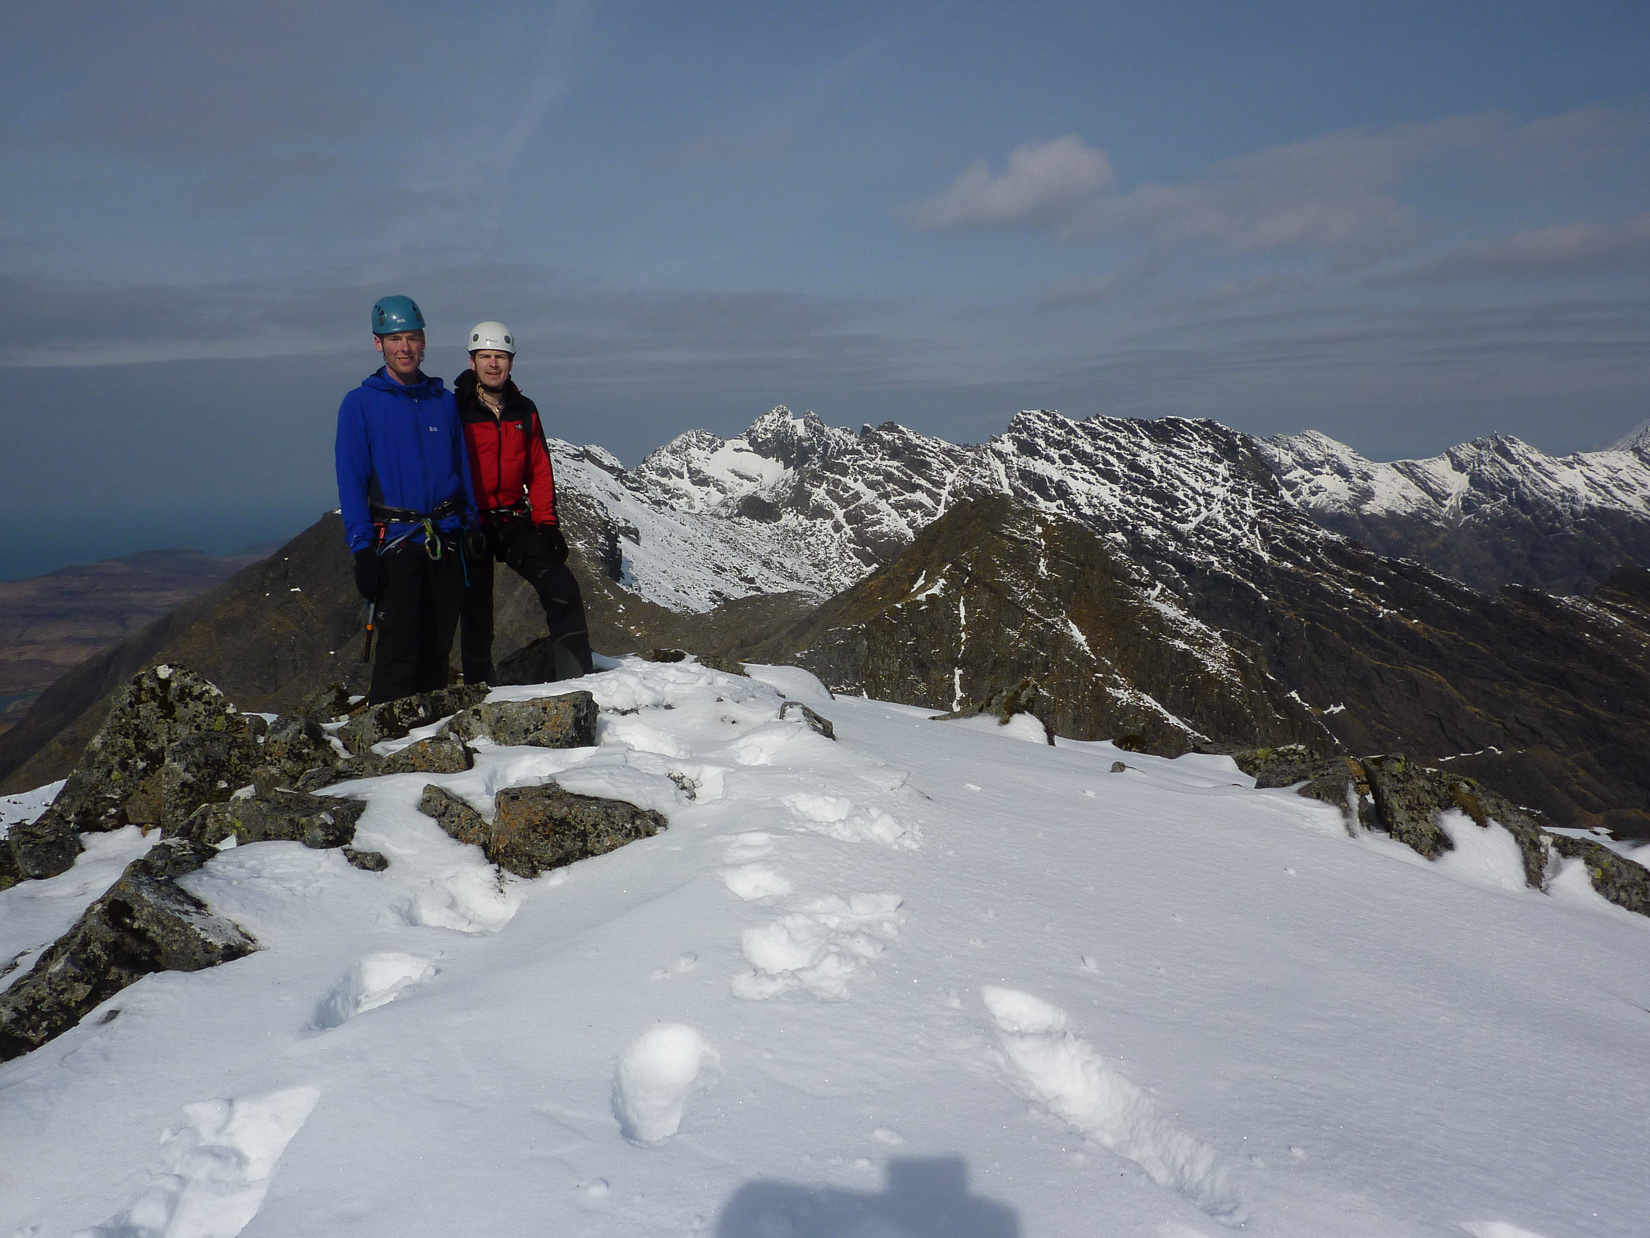 Tired at the end of a winter Traverse of the Cuillin Ridge